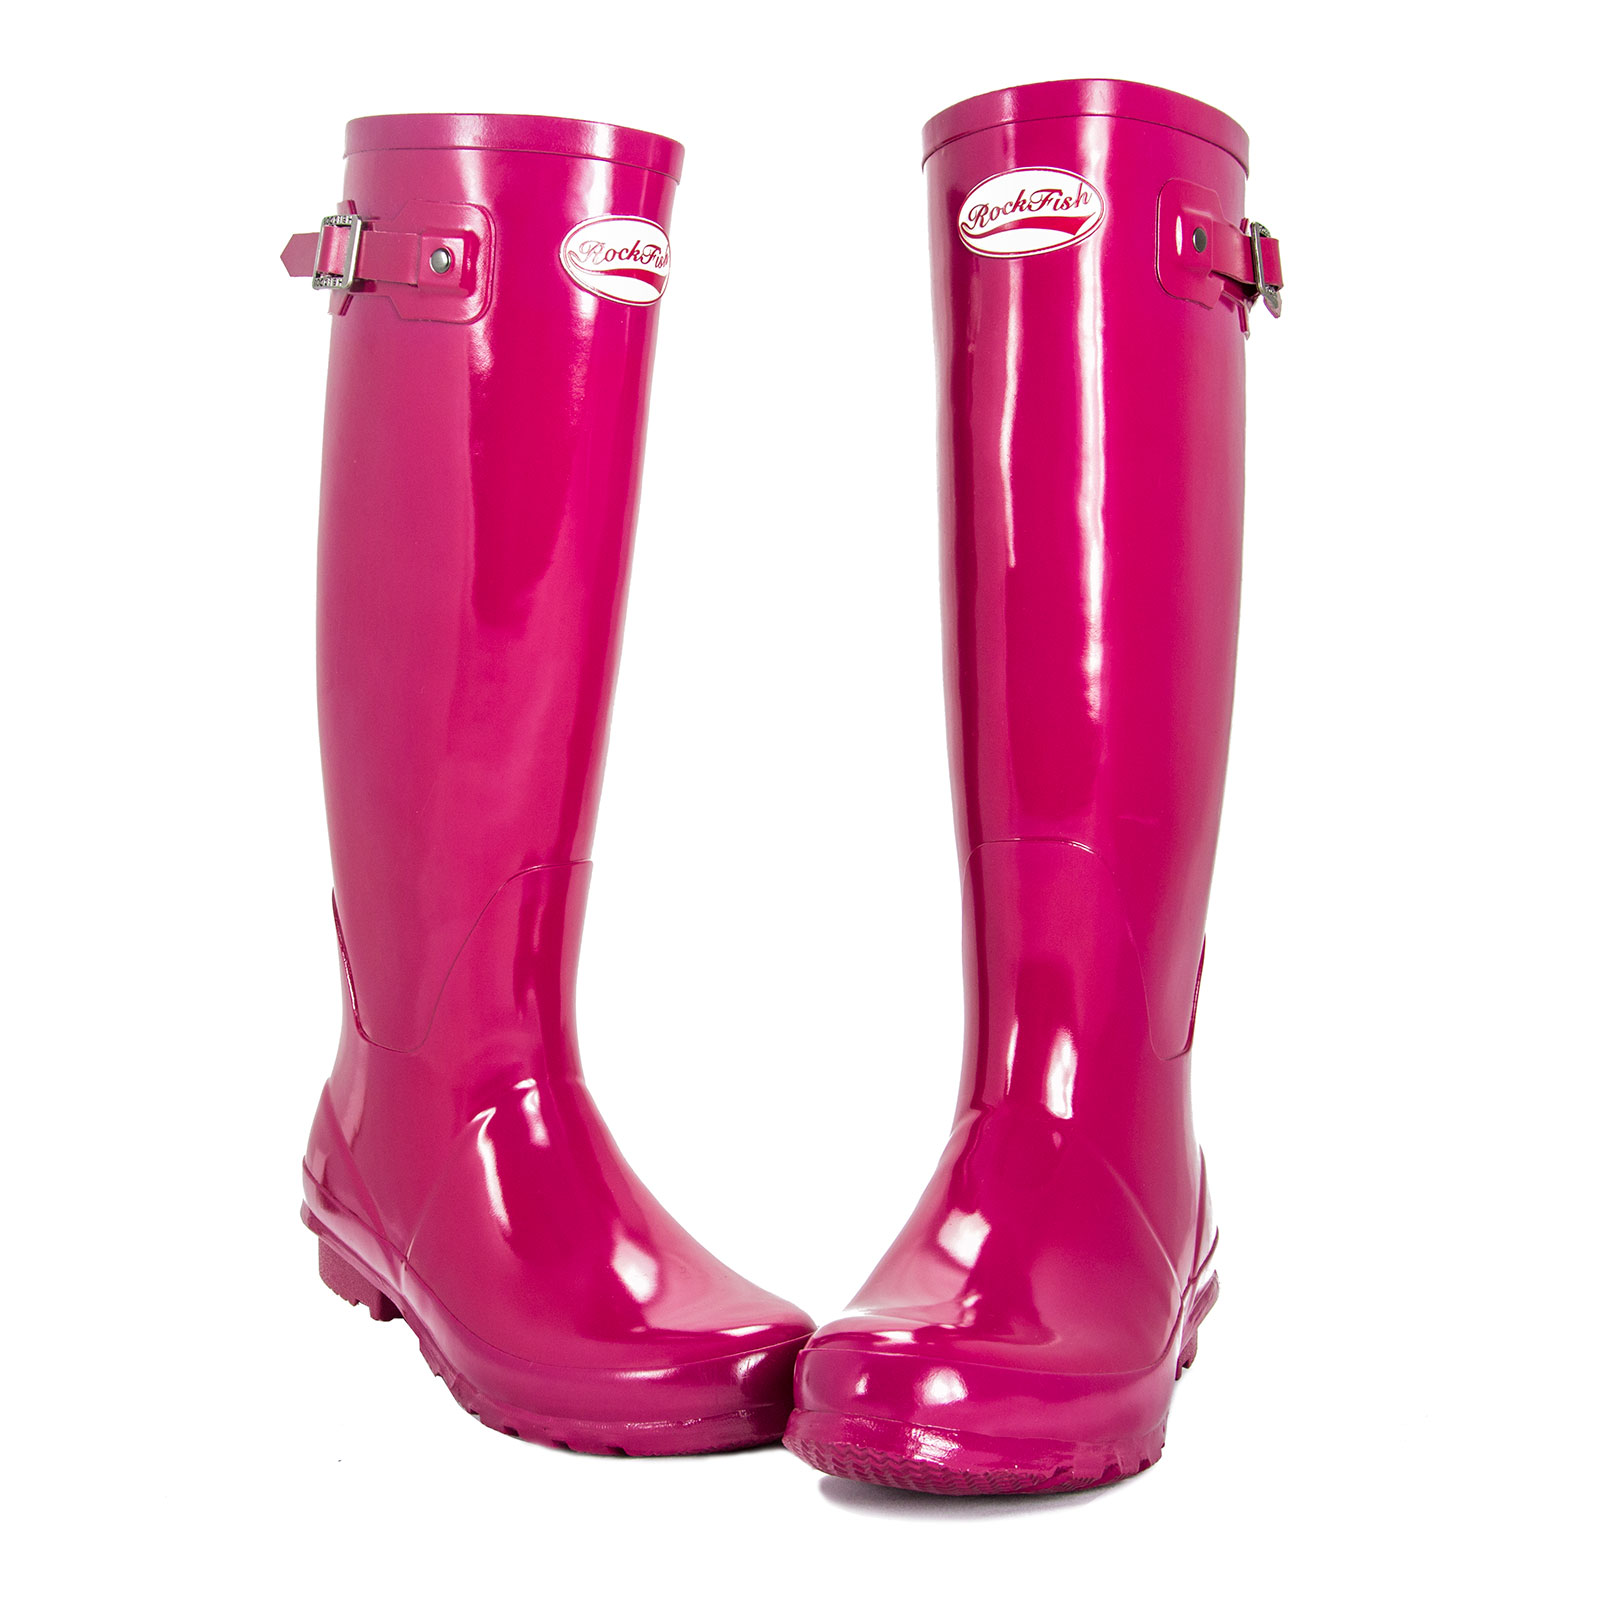 Rockfish Original Wellington Boots Tall Gloss